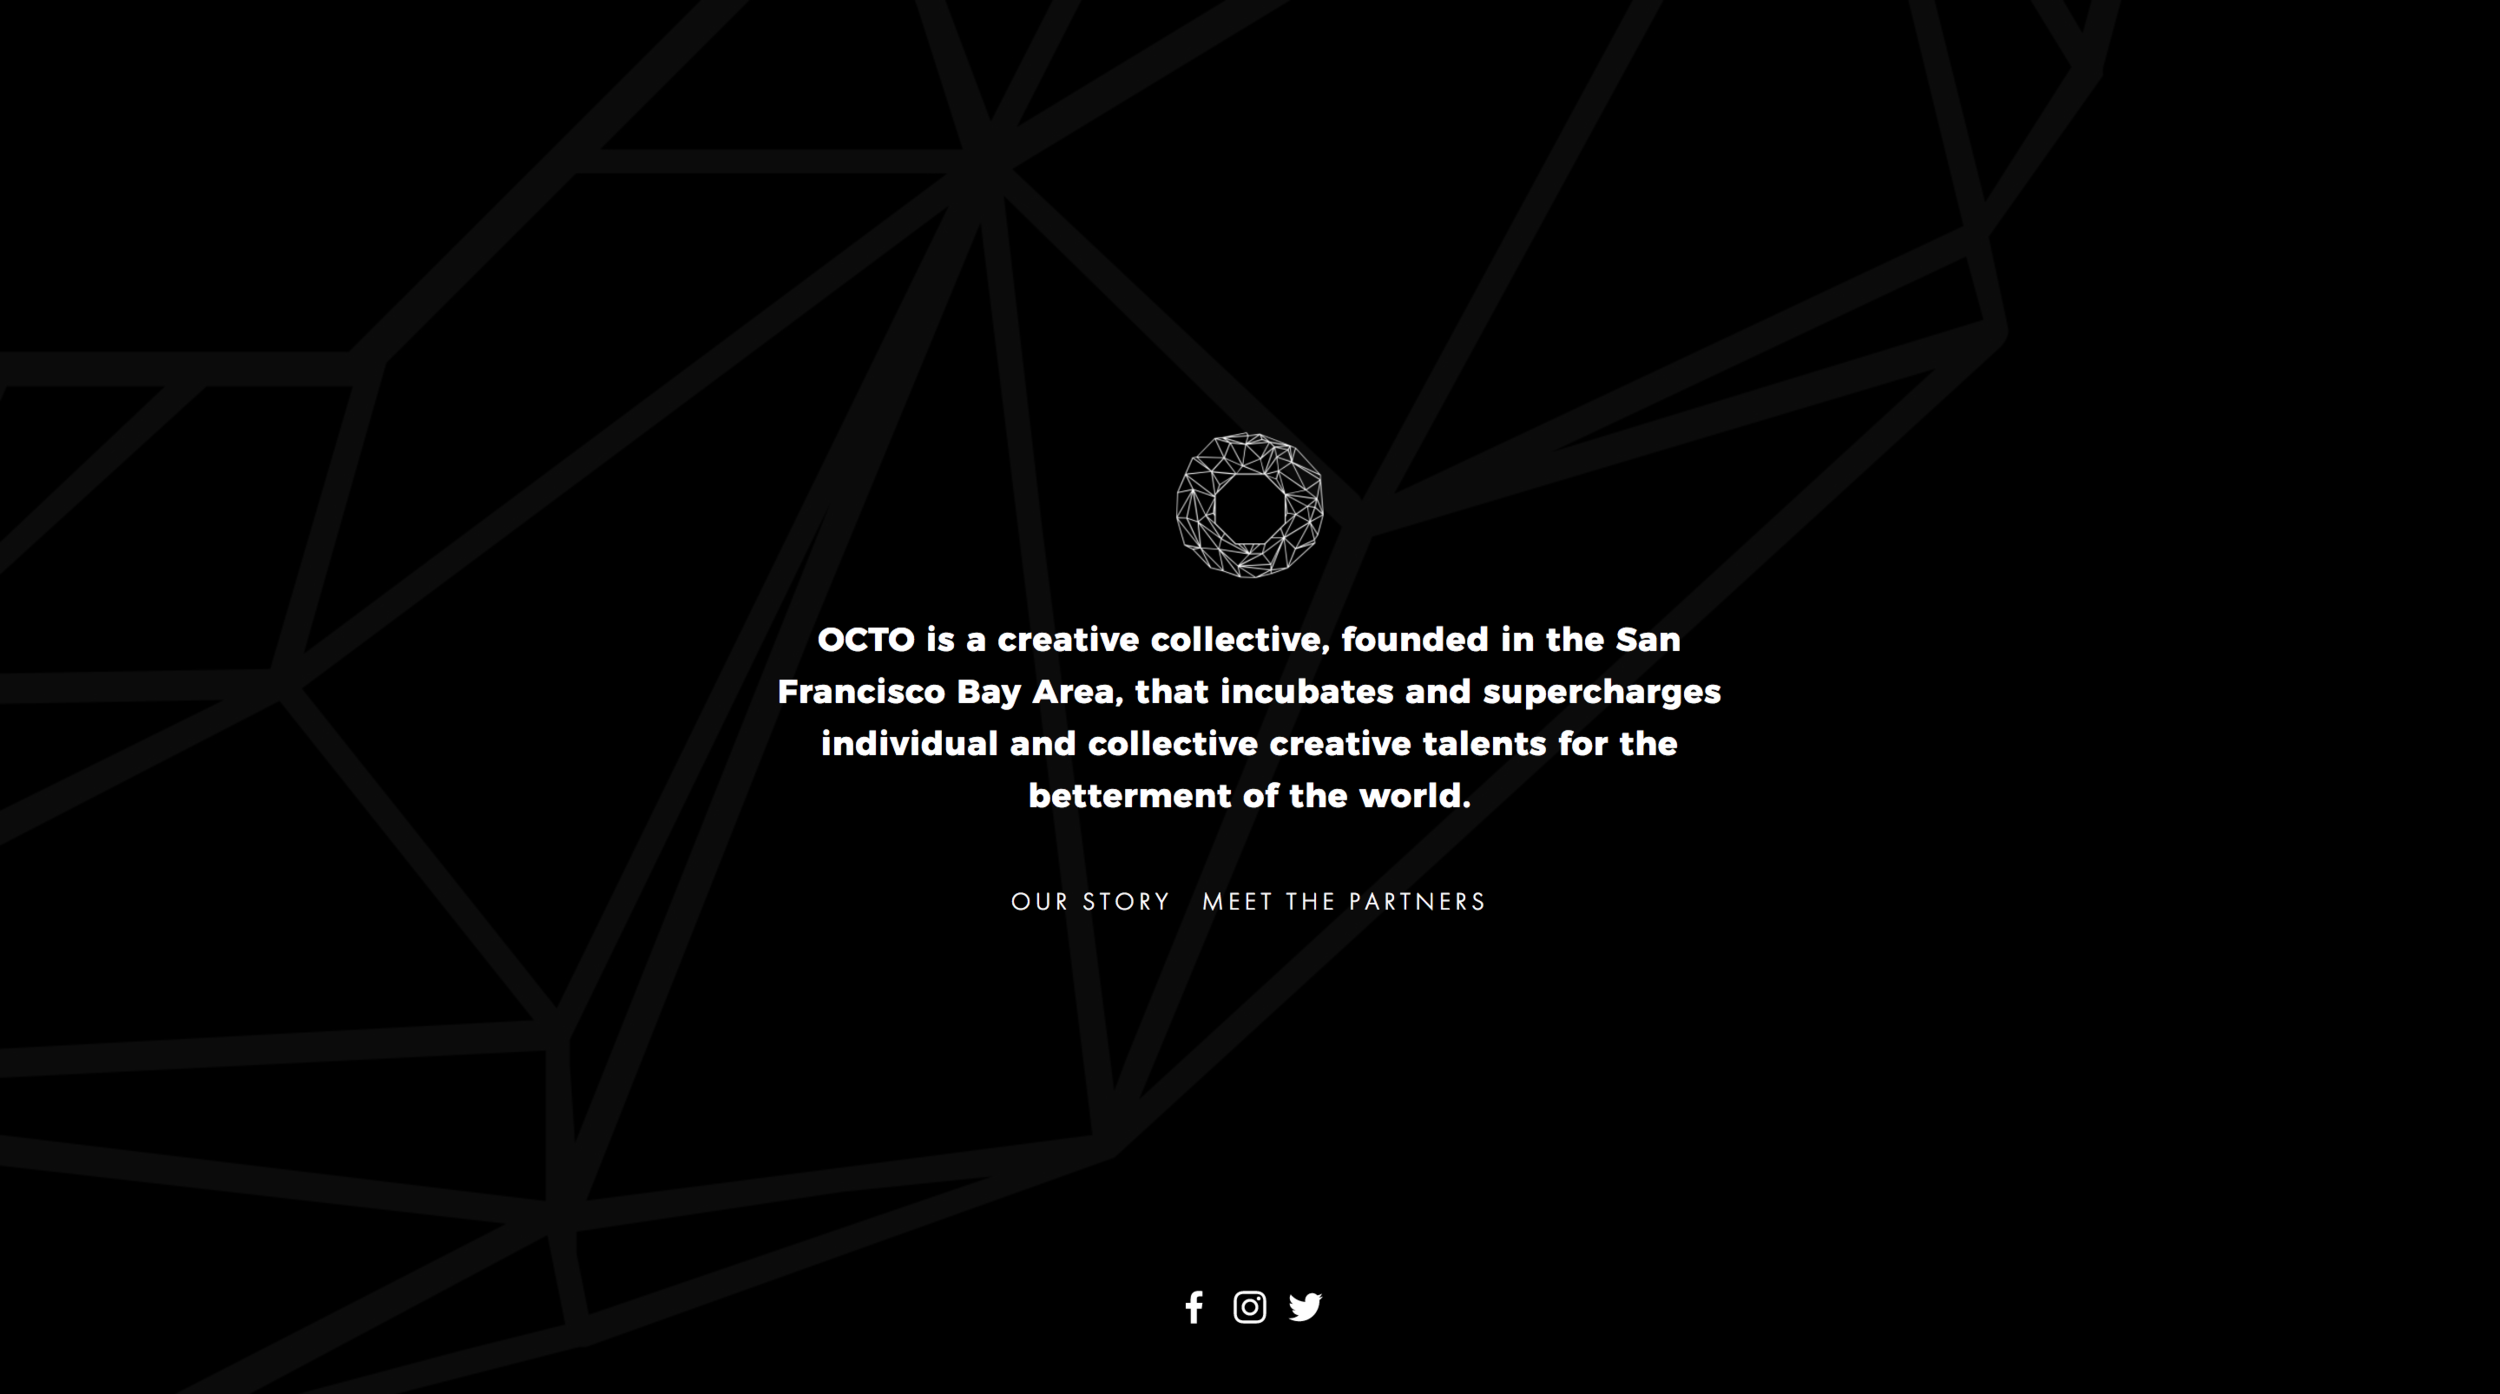 screencapture-octocollective-1515384480926.png